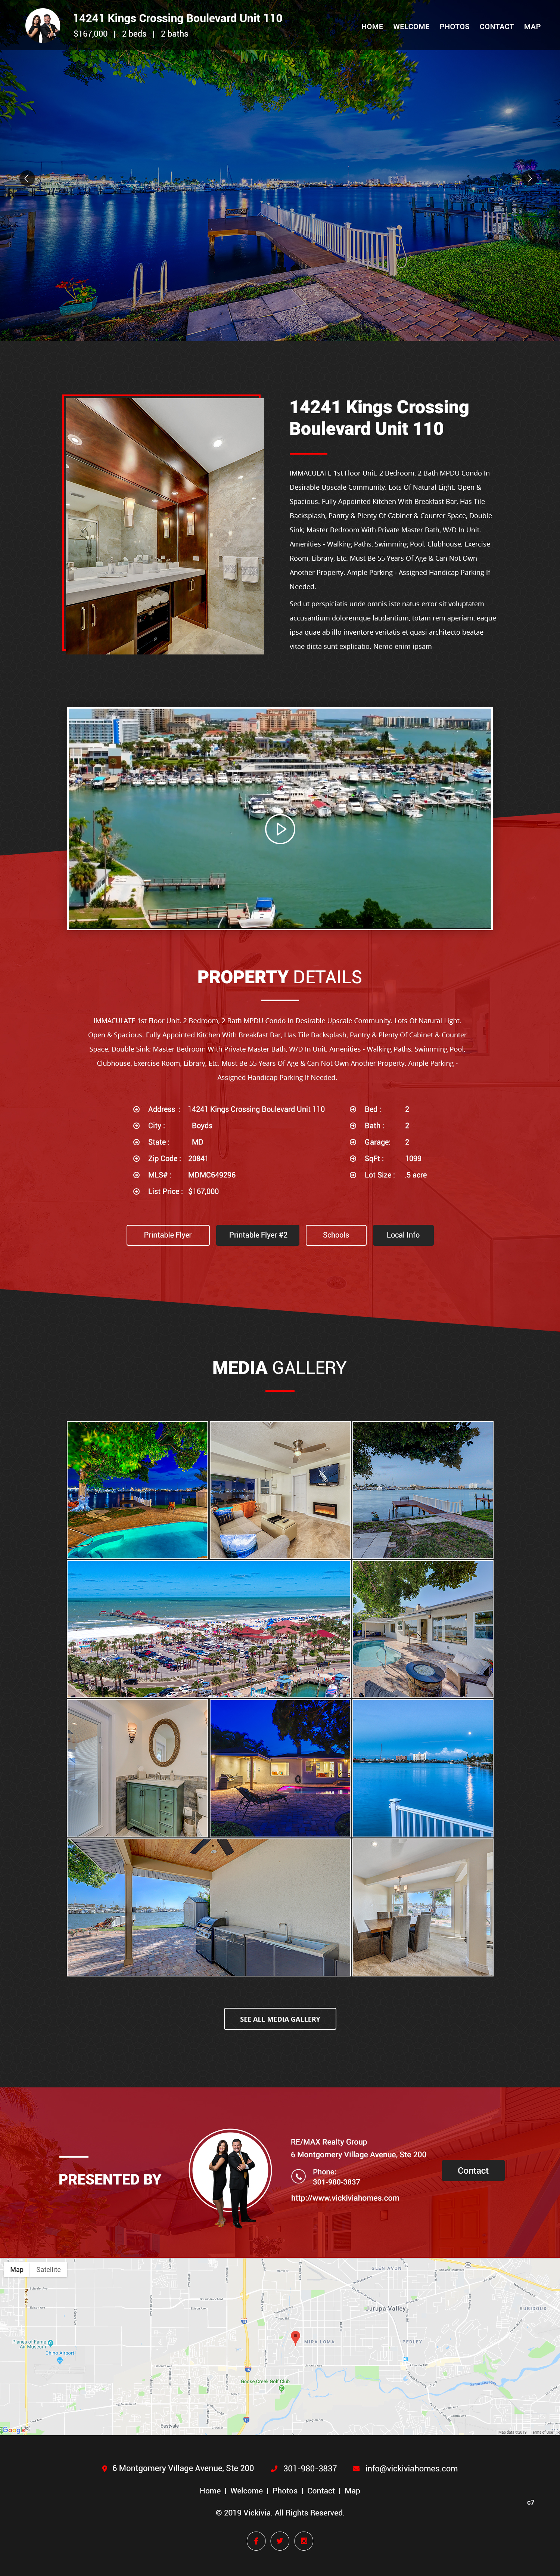 Winning Entry #15 for Website Design contest - Single Real Estate Property Listing Website Template - original